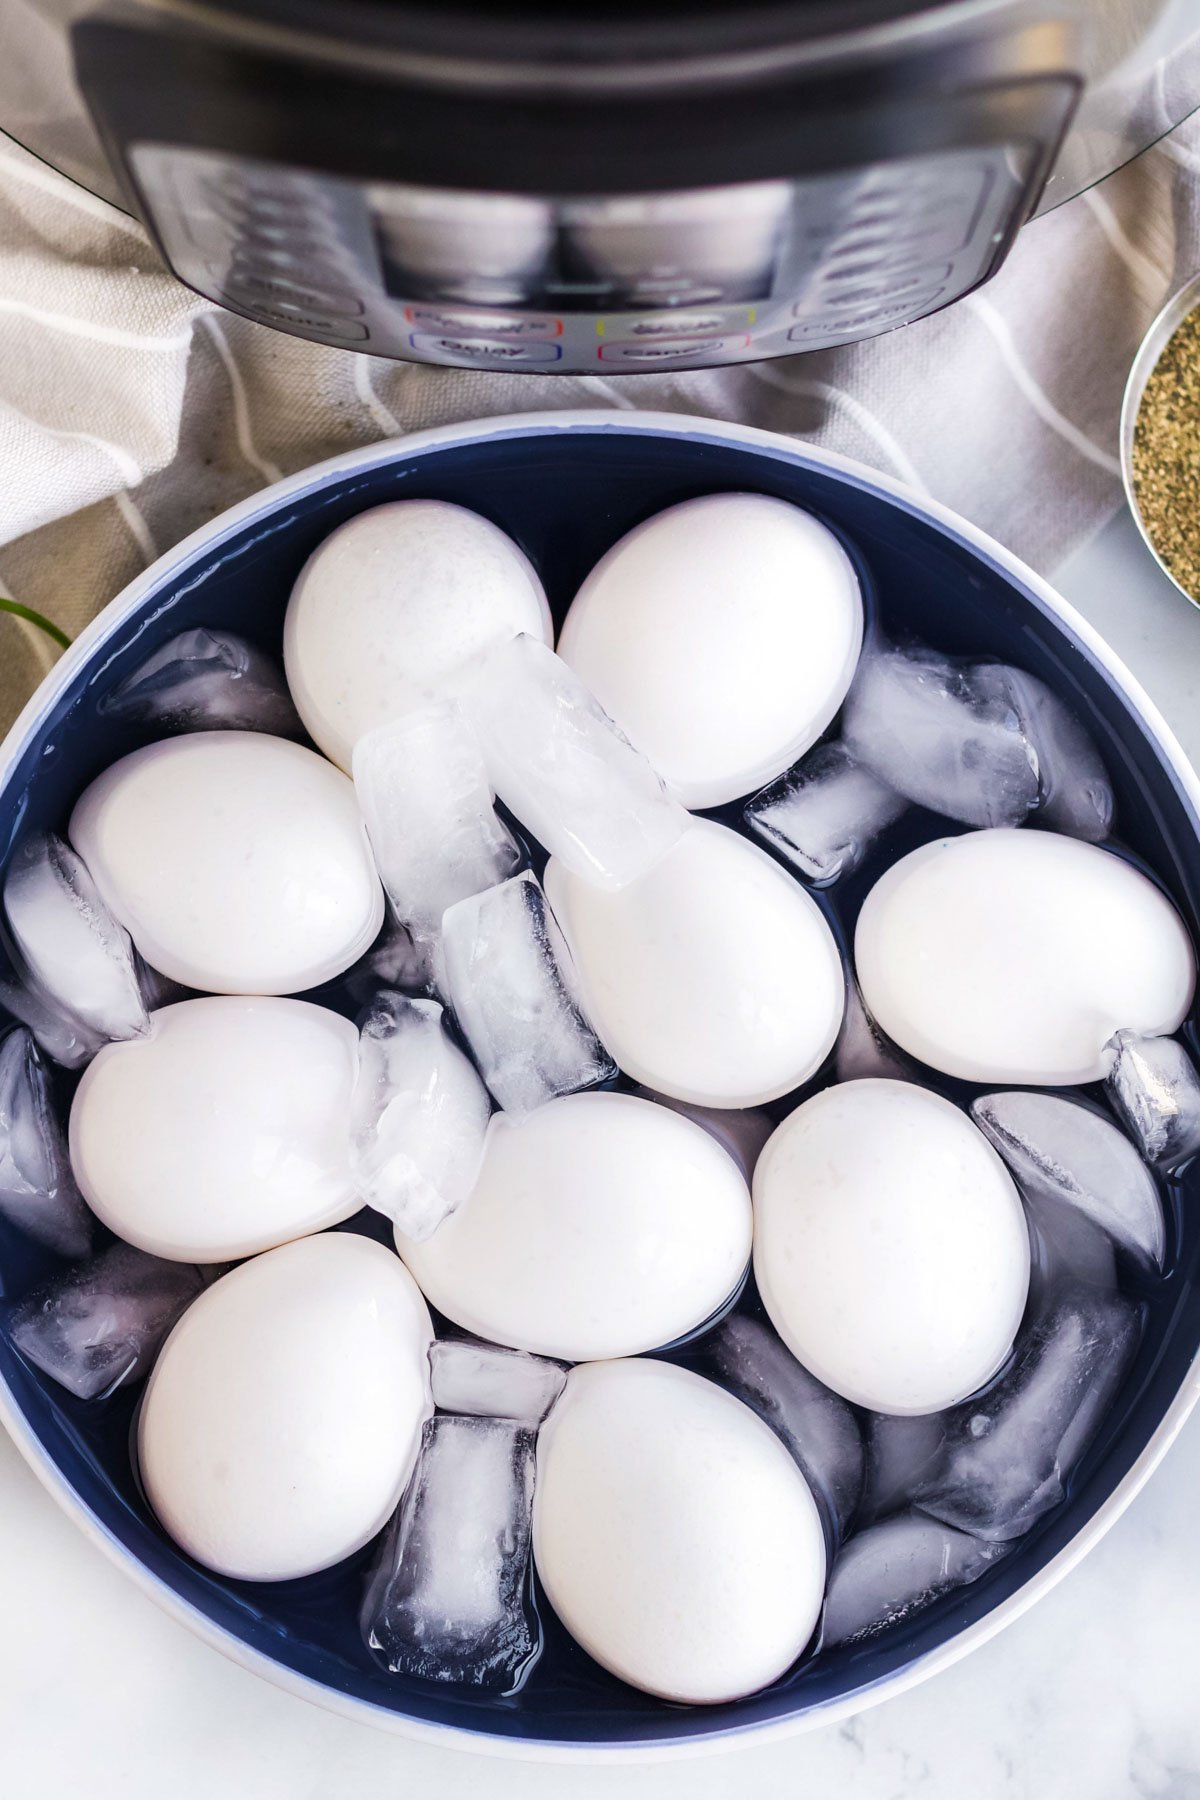 instant pot, eggs in a bowl of ice water